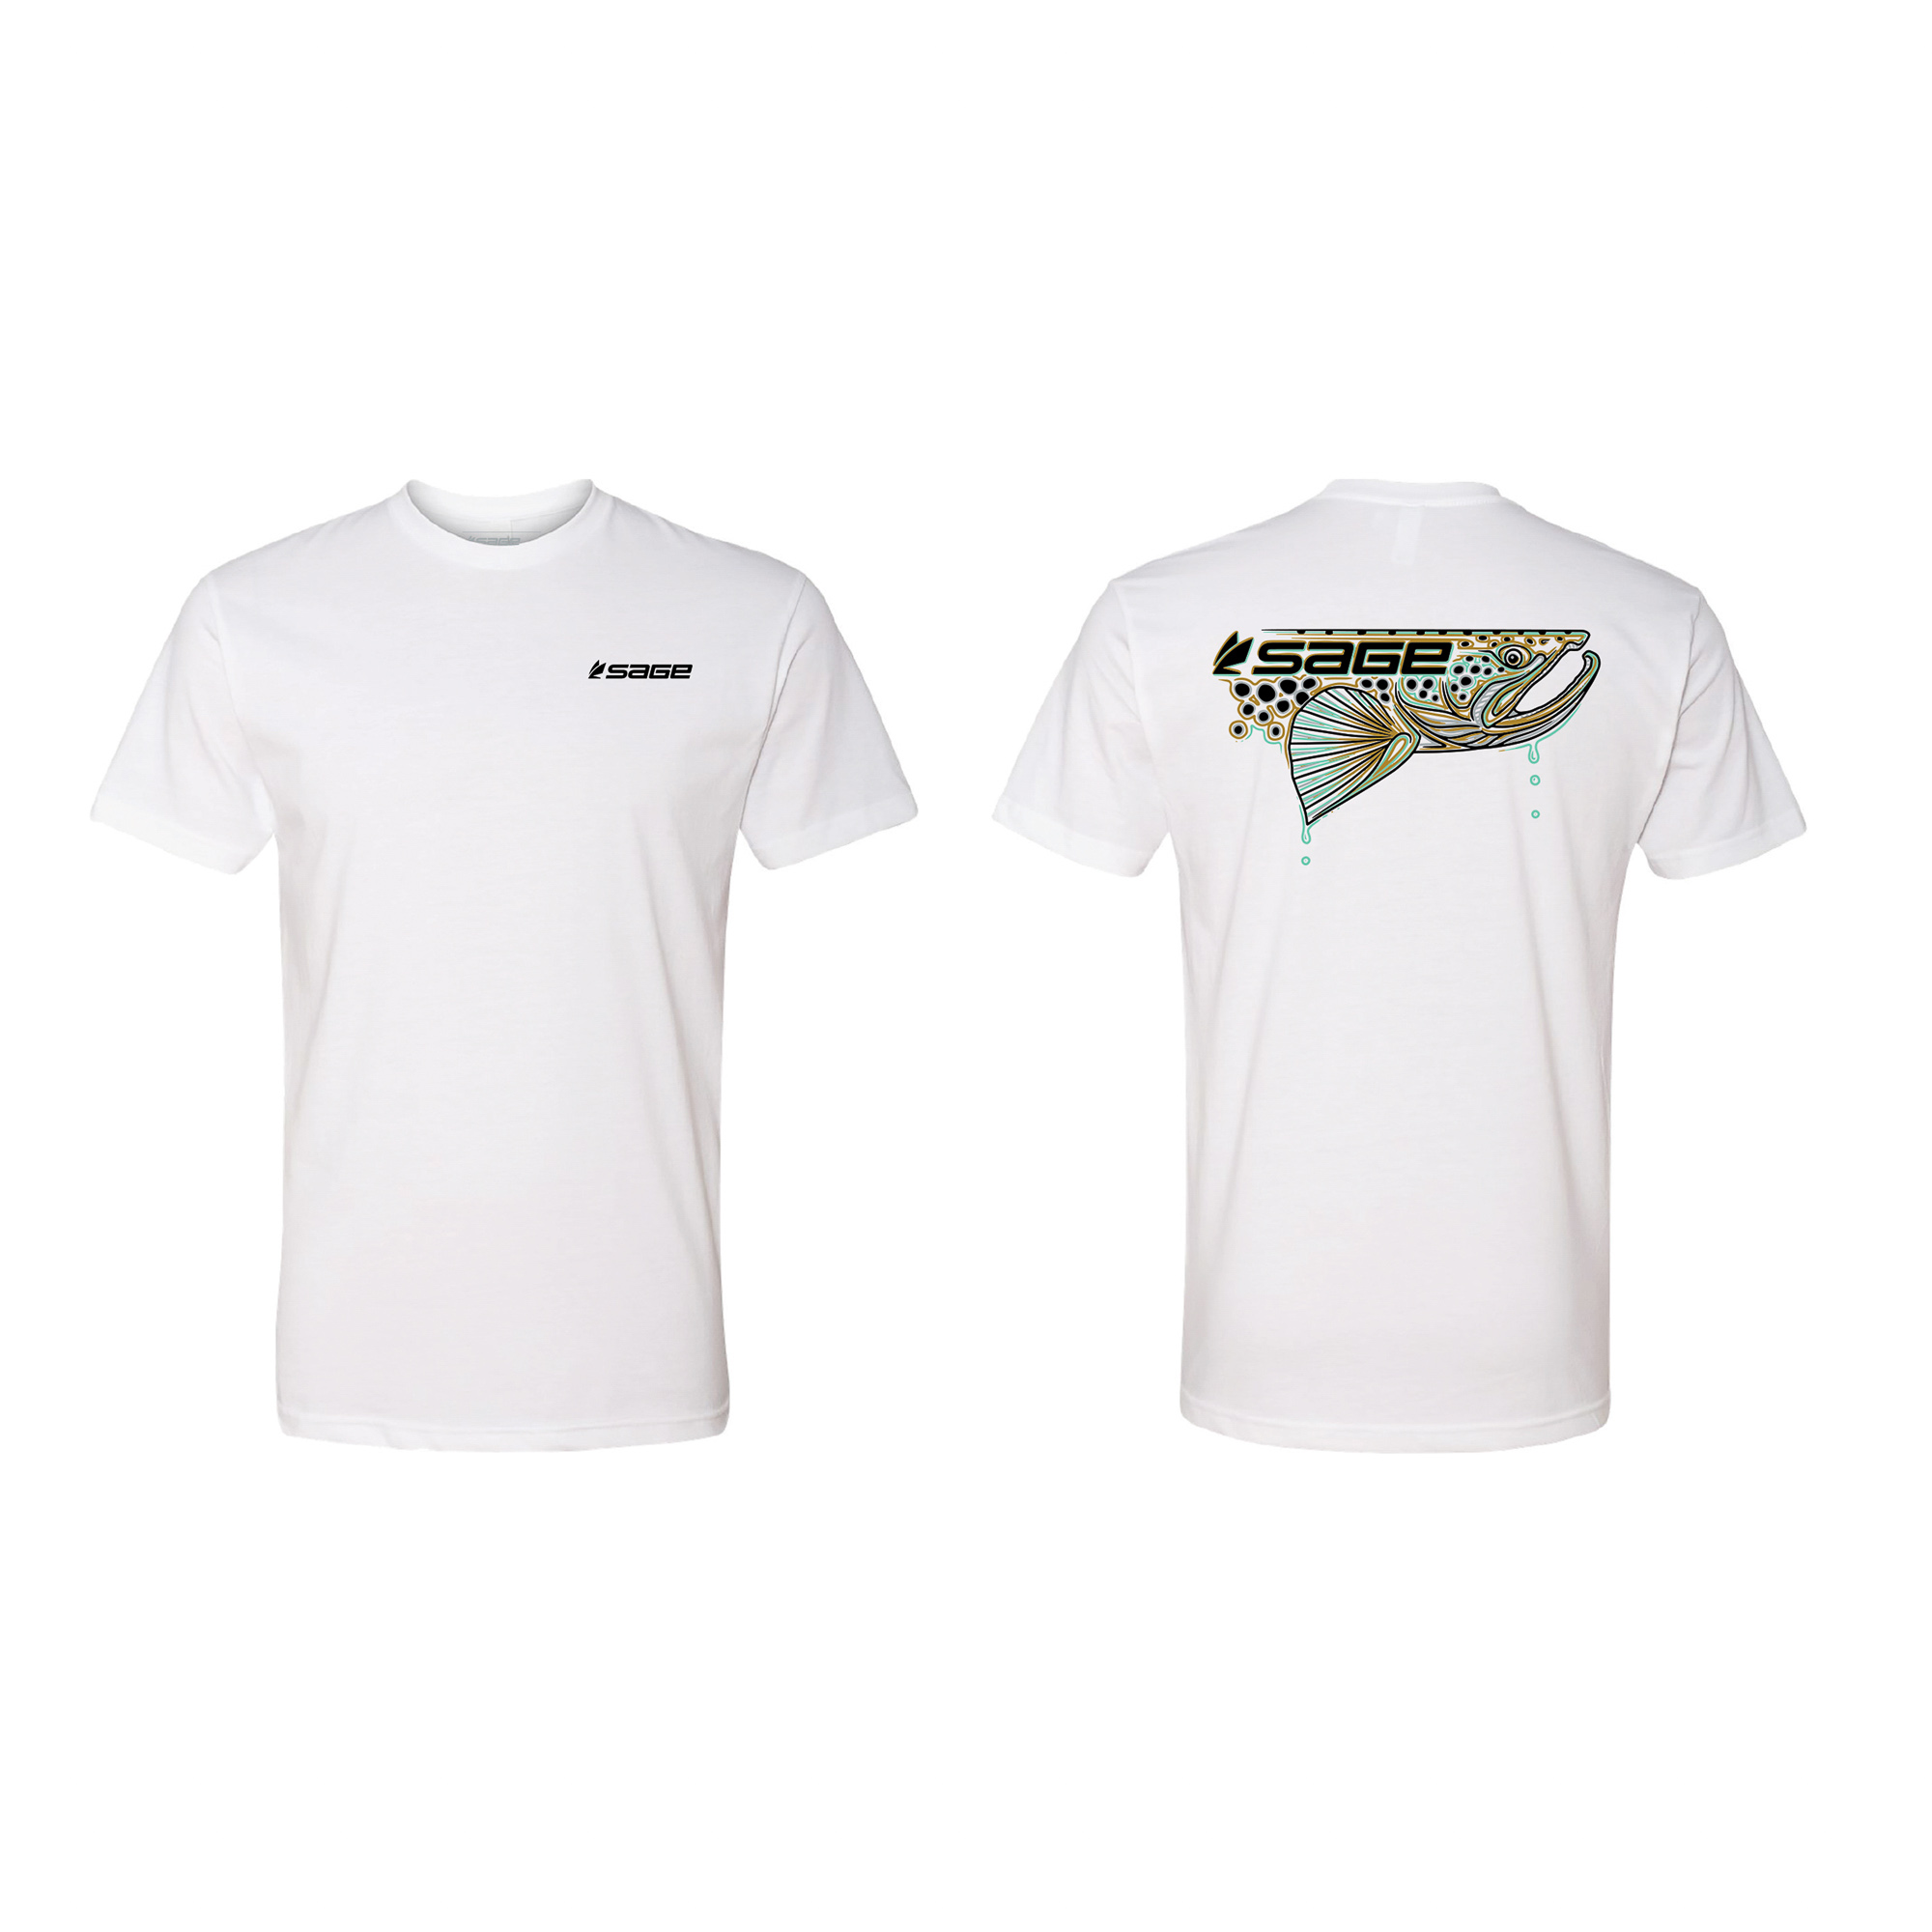 Sage Dripping Trout T-shirt